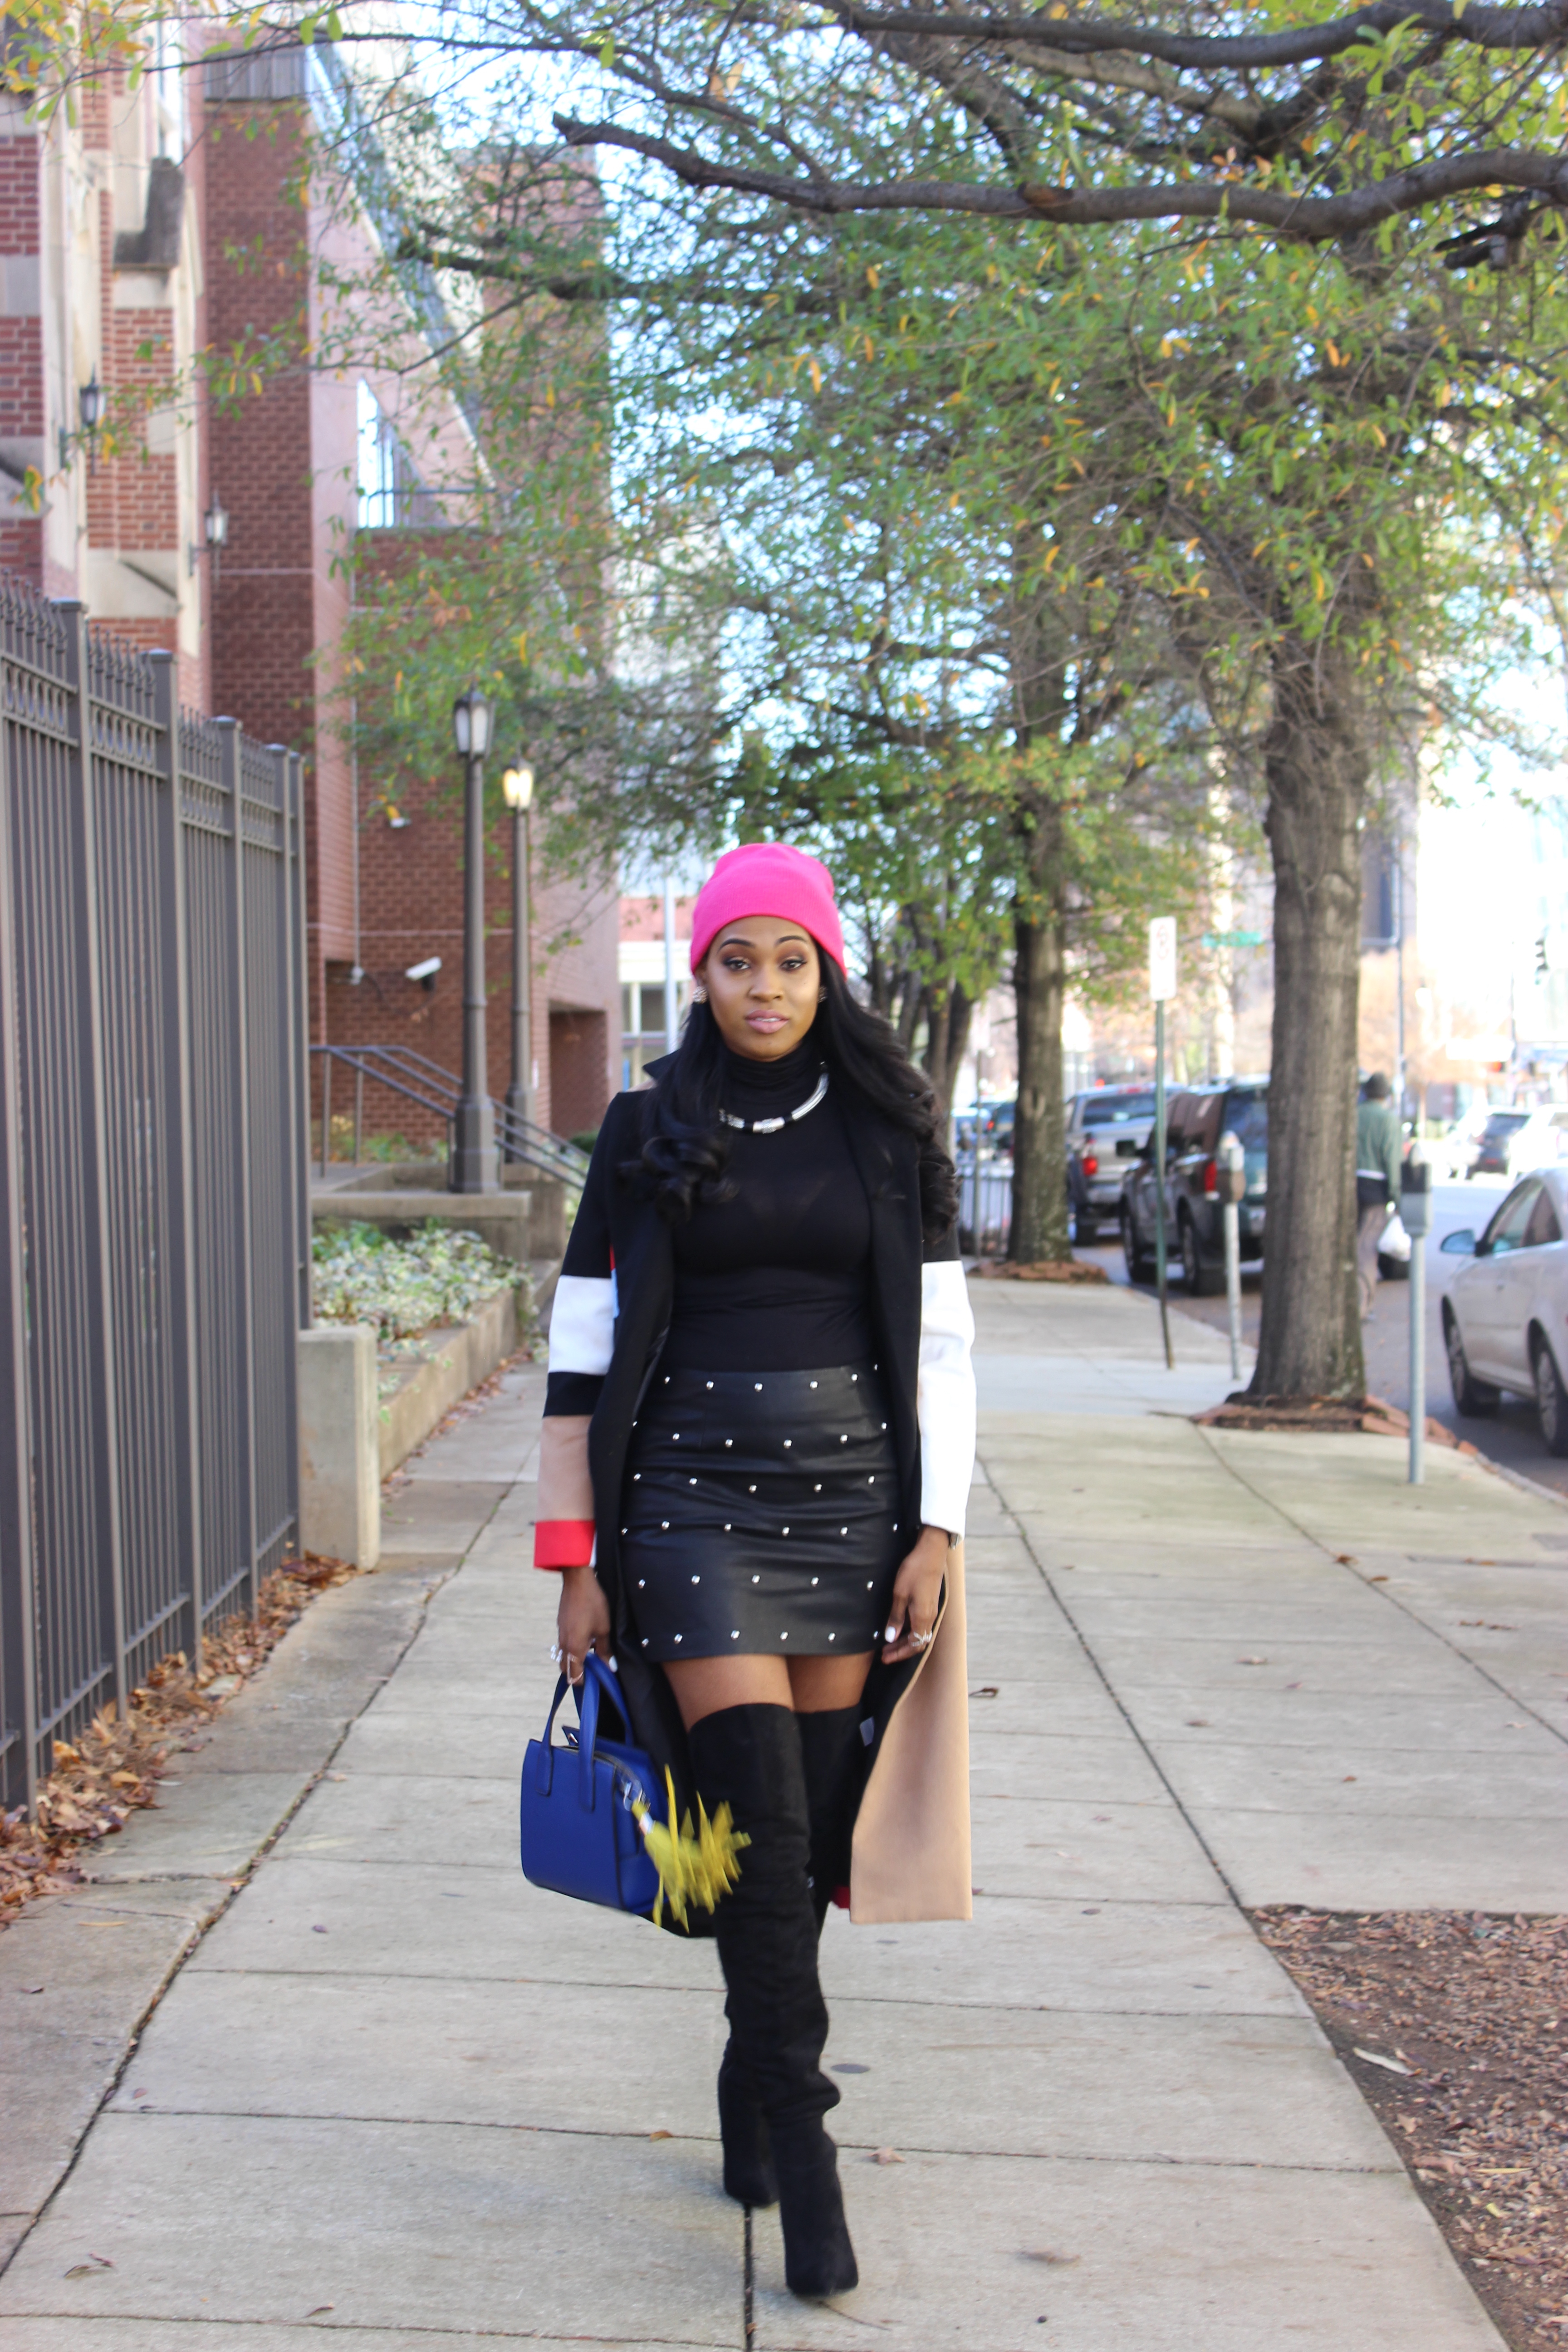 Style-Files-SheIn-Multicolor-Lapel-Color-Block-Coat-Forever21-Faux-Leather-studded-mini-skirt-black-sheer-turtleneck-Truffle-Collection-Over- The-Knee-Lace-Up-Back-High-Heeled-Boots-Hot-Pink-Beanie-Winter-Coat-Style-Guide-Oohlalablog-31